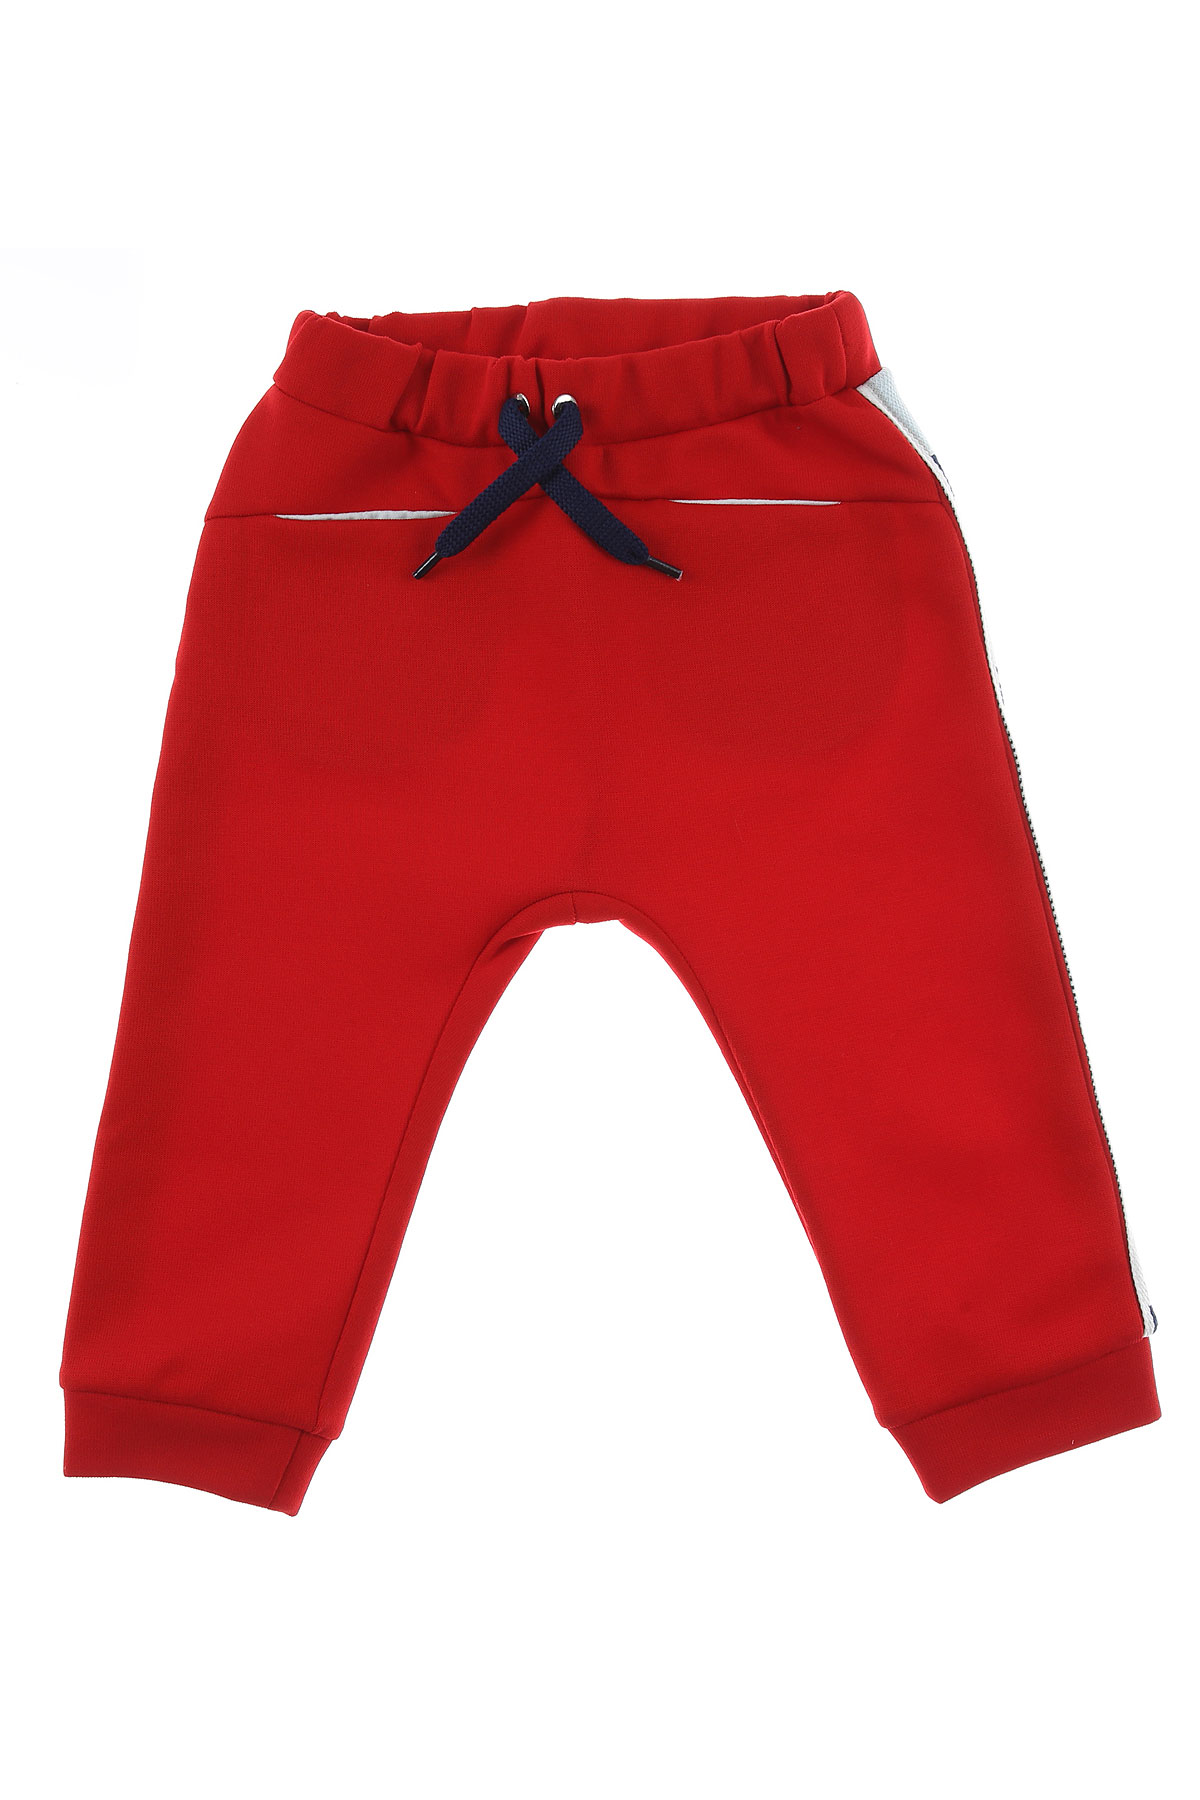 Image of Fendi Baby Sweatpants for Boys, Red, Cotton, 2017, 12M 18M 2Y